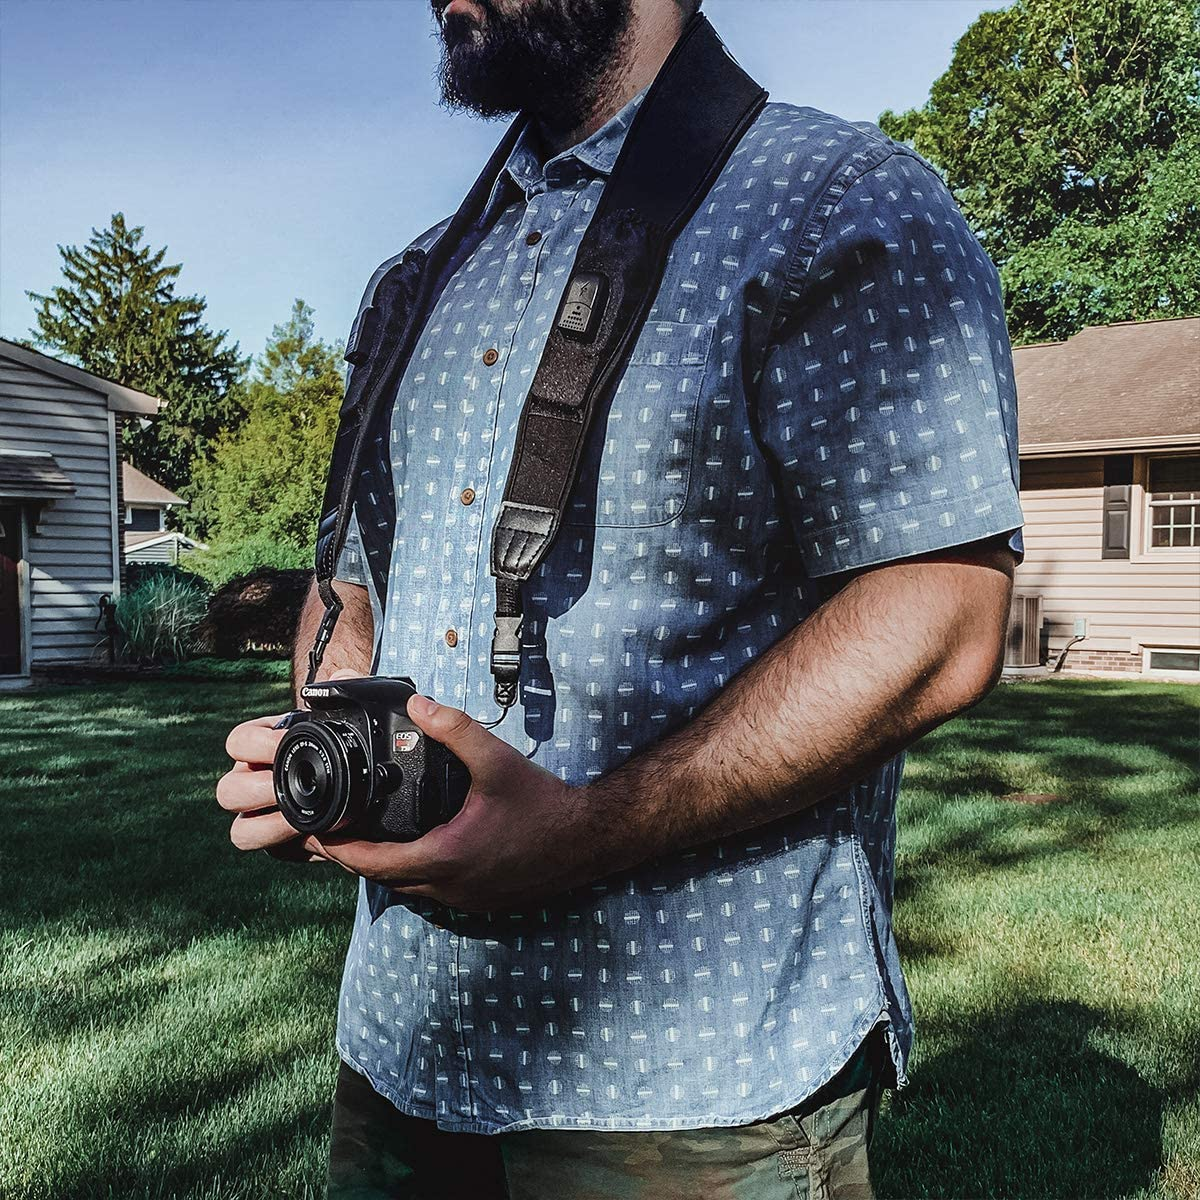 Deco Photo Camera Power Strap with Built in 2600 mAh Camera Charging Banks Non-Slip Grip Comfortable Shoulder Strap Universal Compatible with Most Models Charge As You Shoot